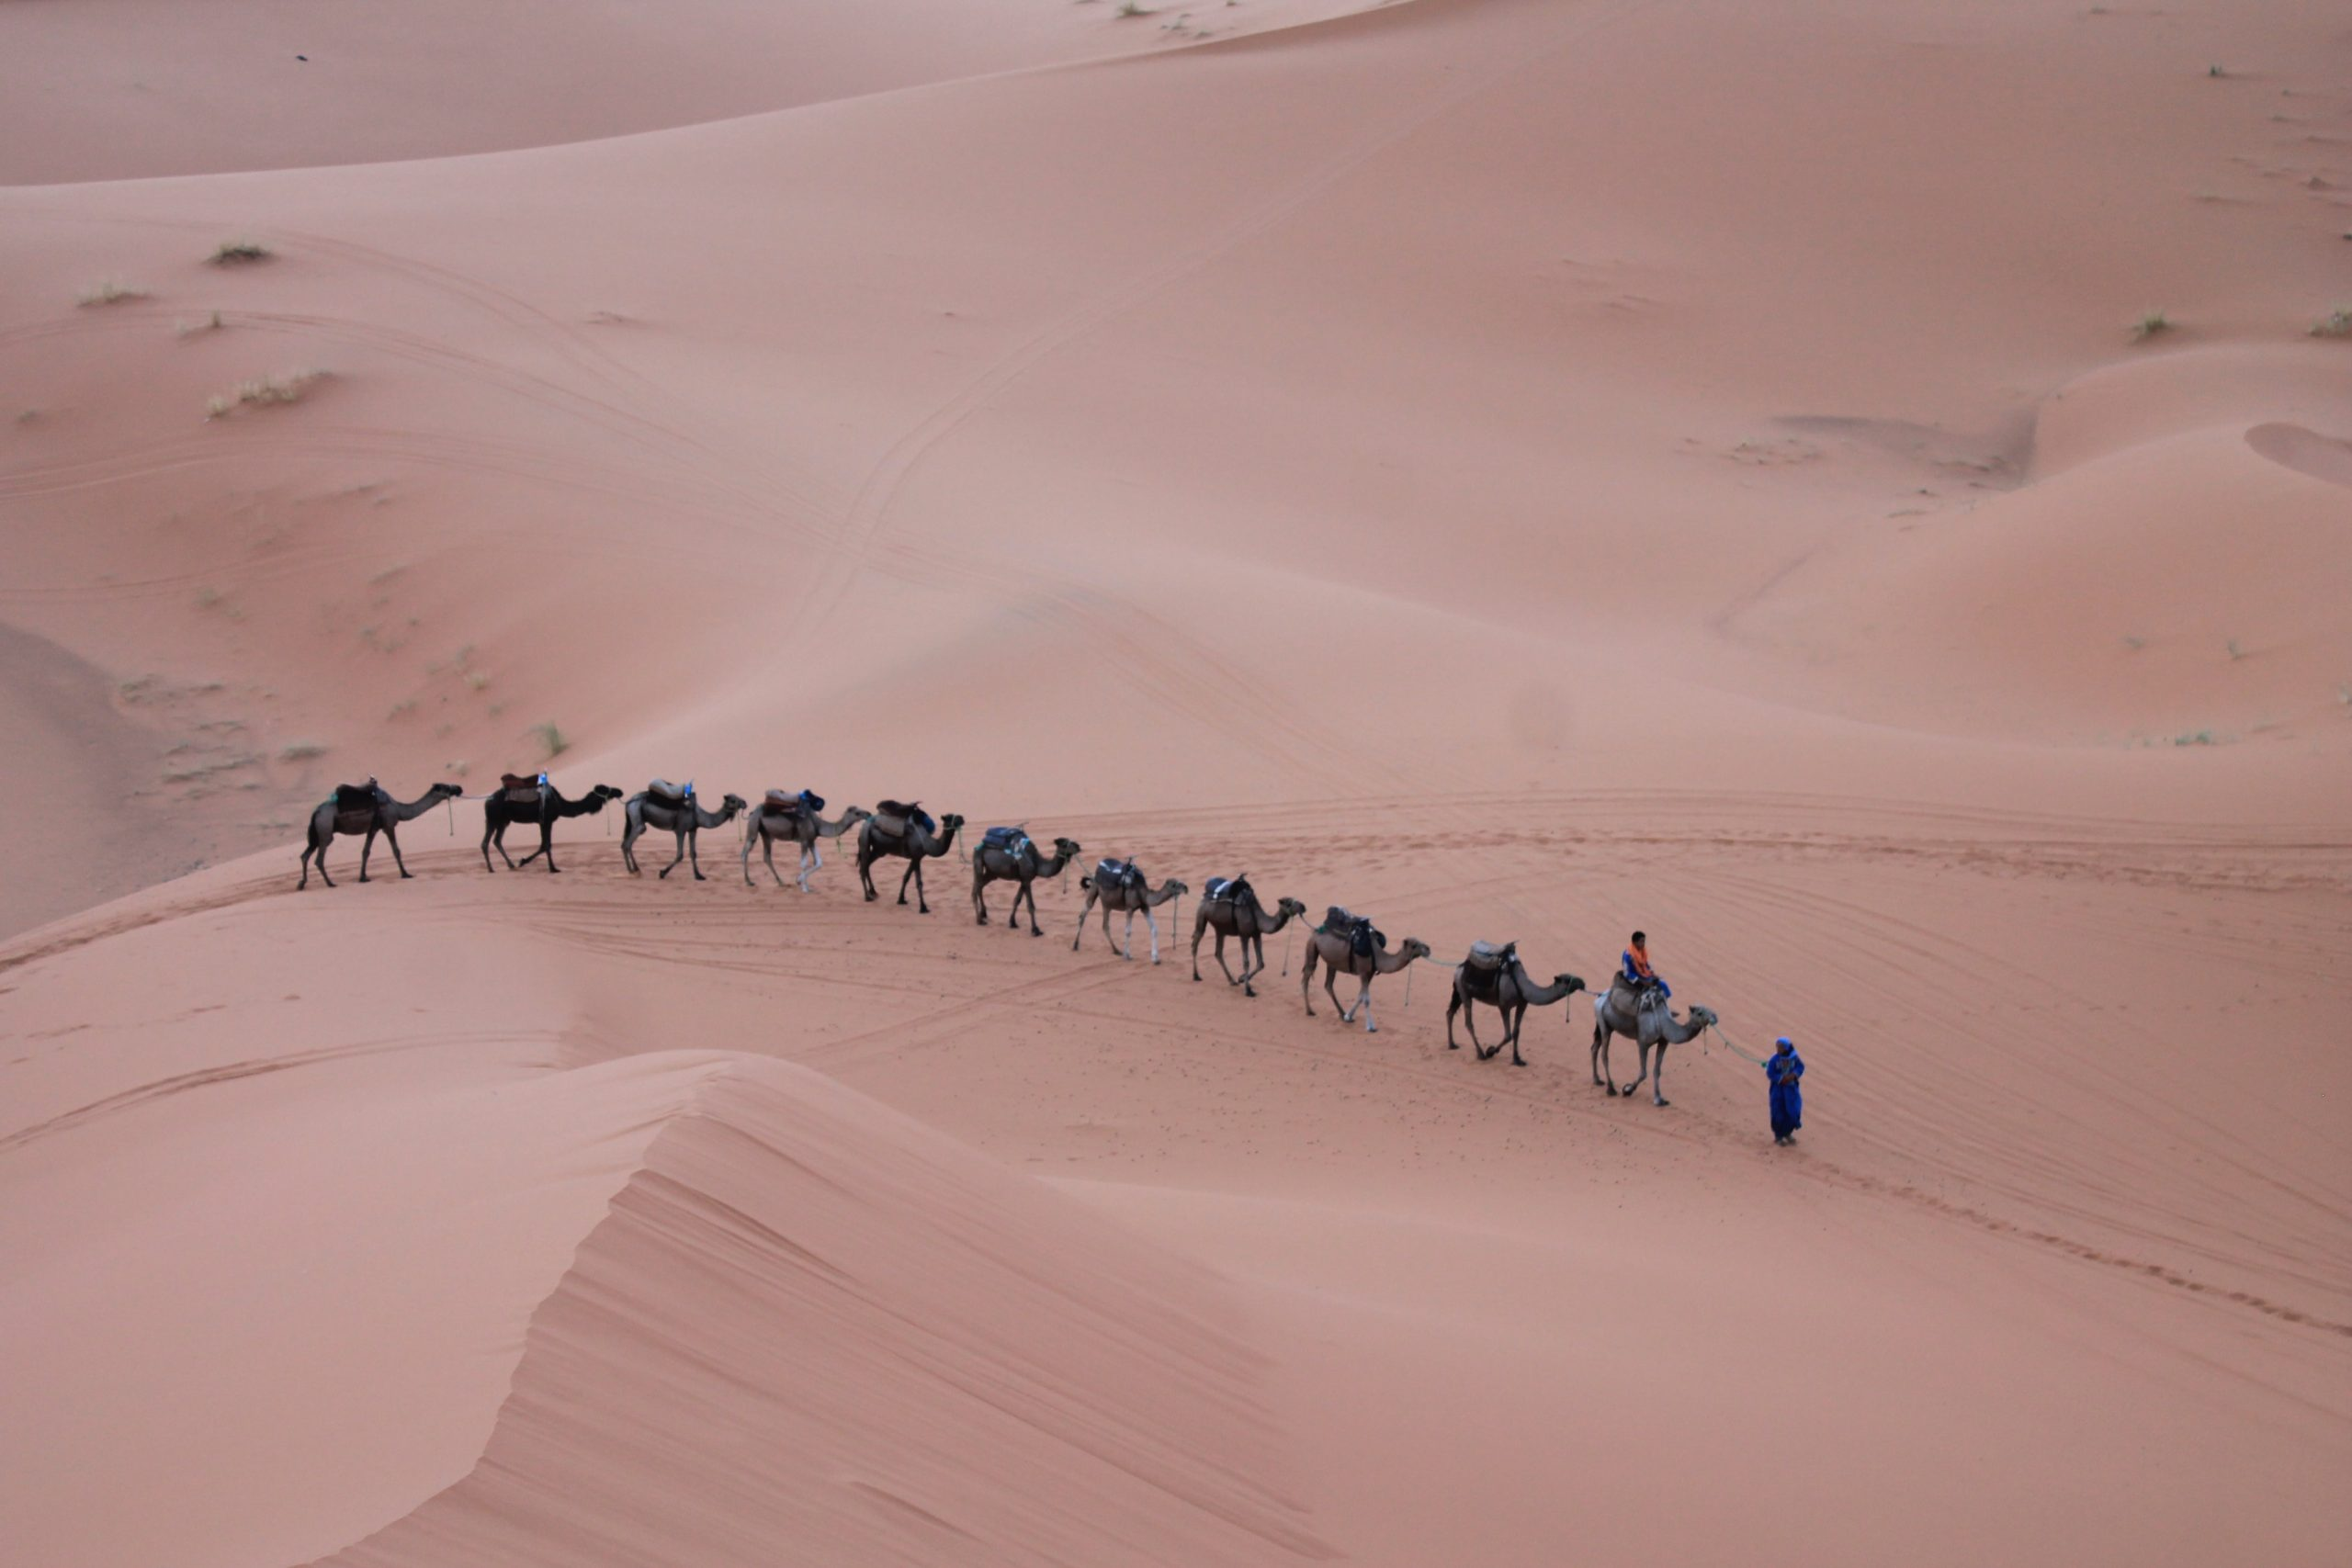 gallery image for 4 Day Private Tour Sahara Desert From Marrakech